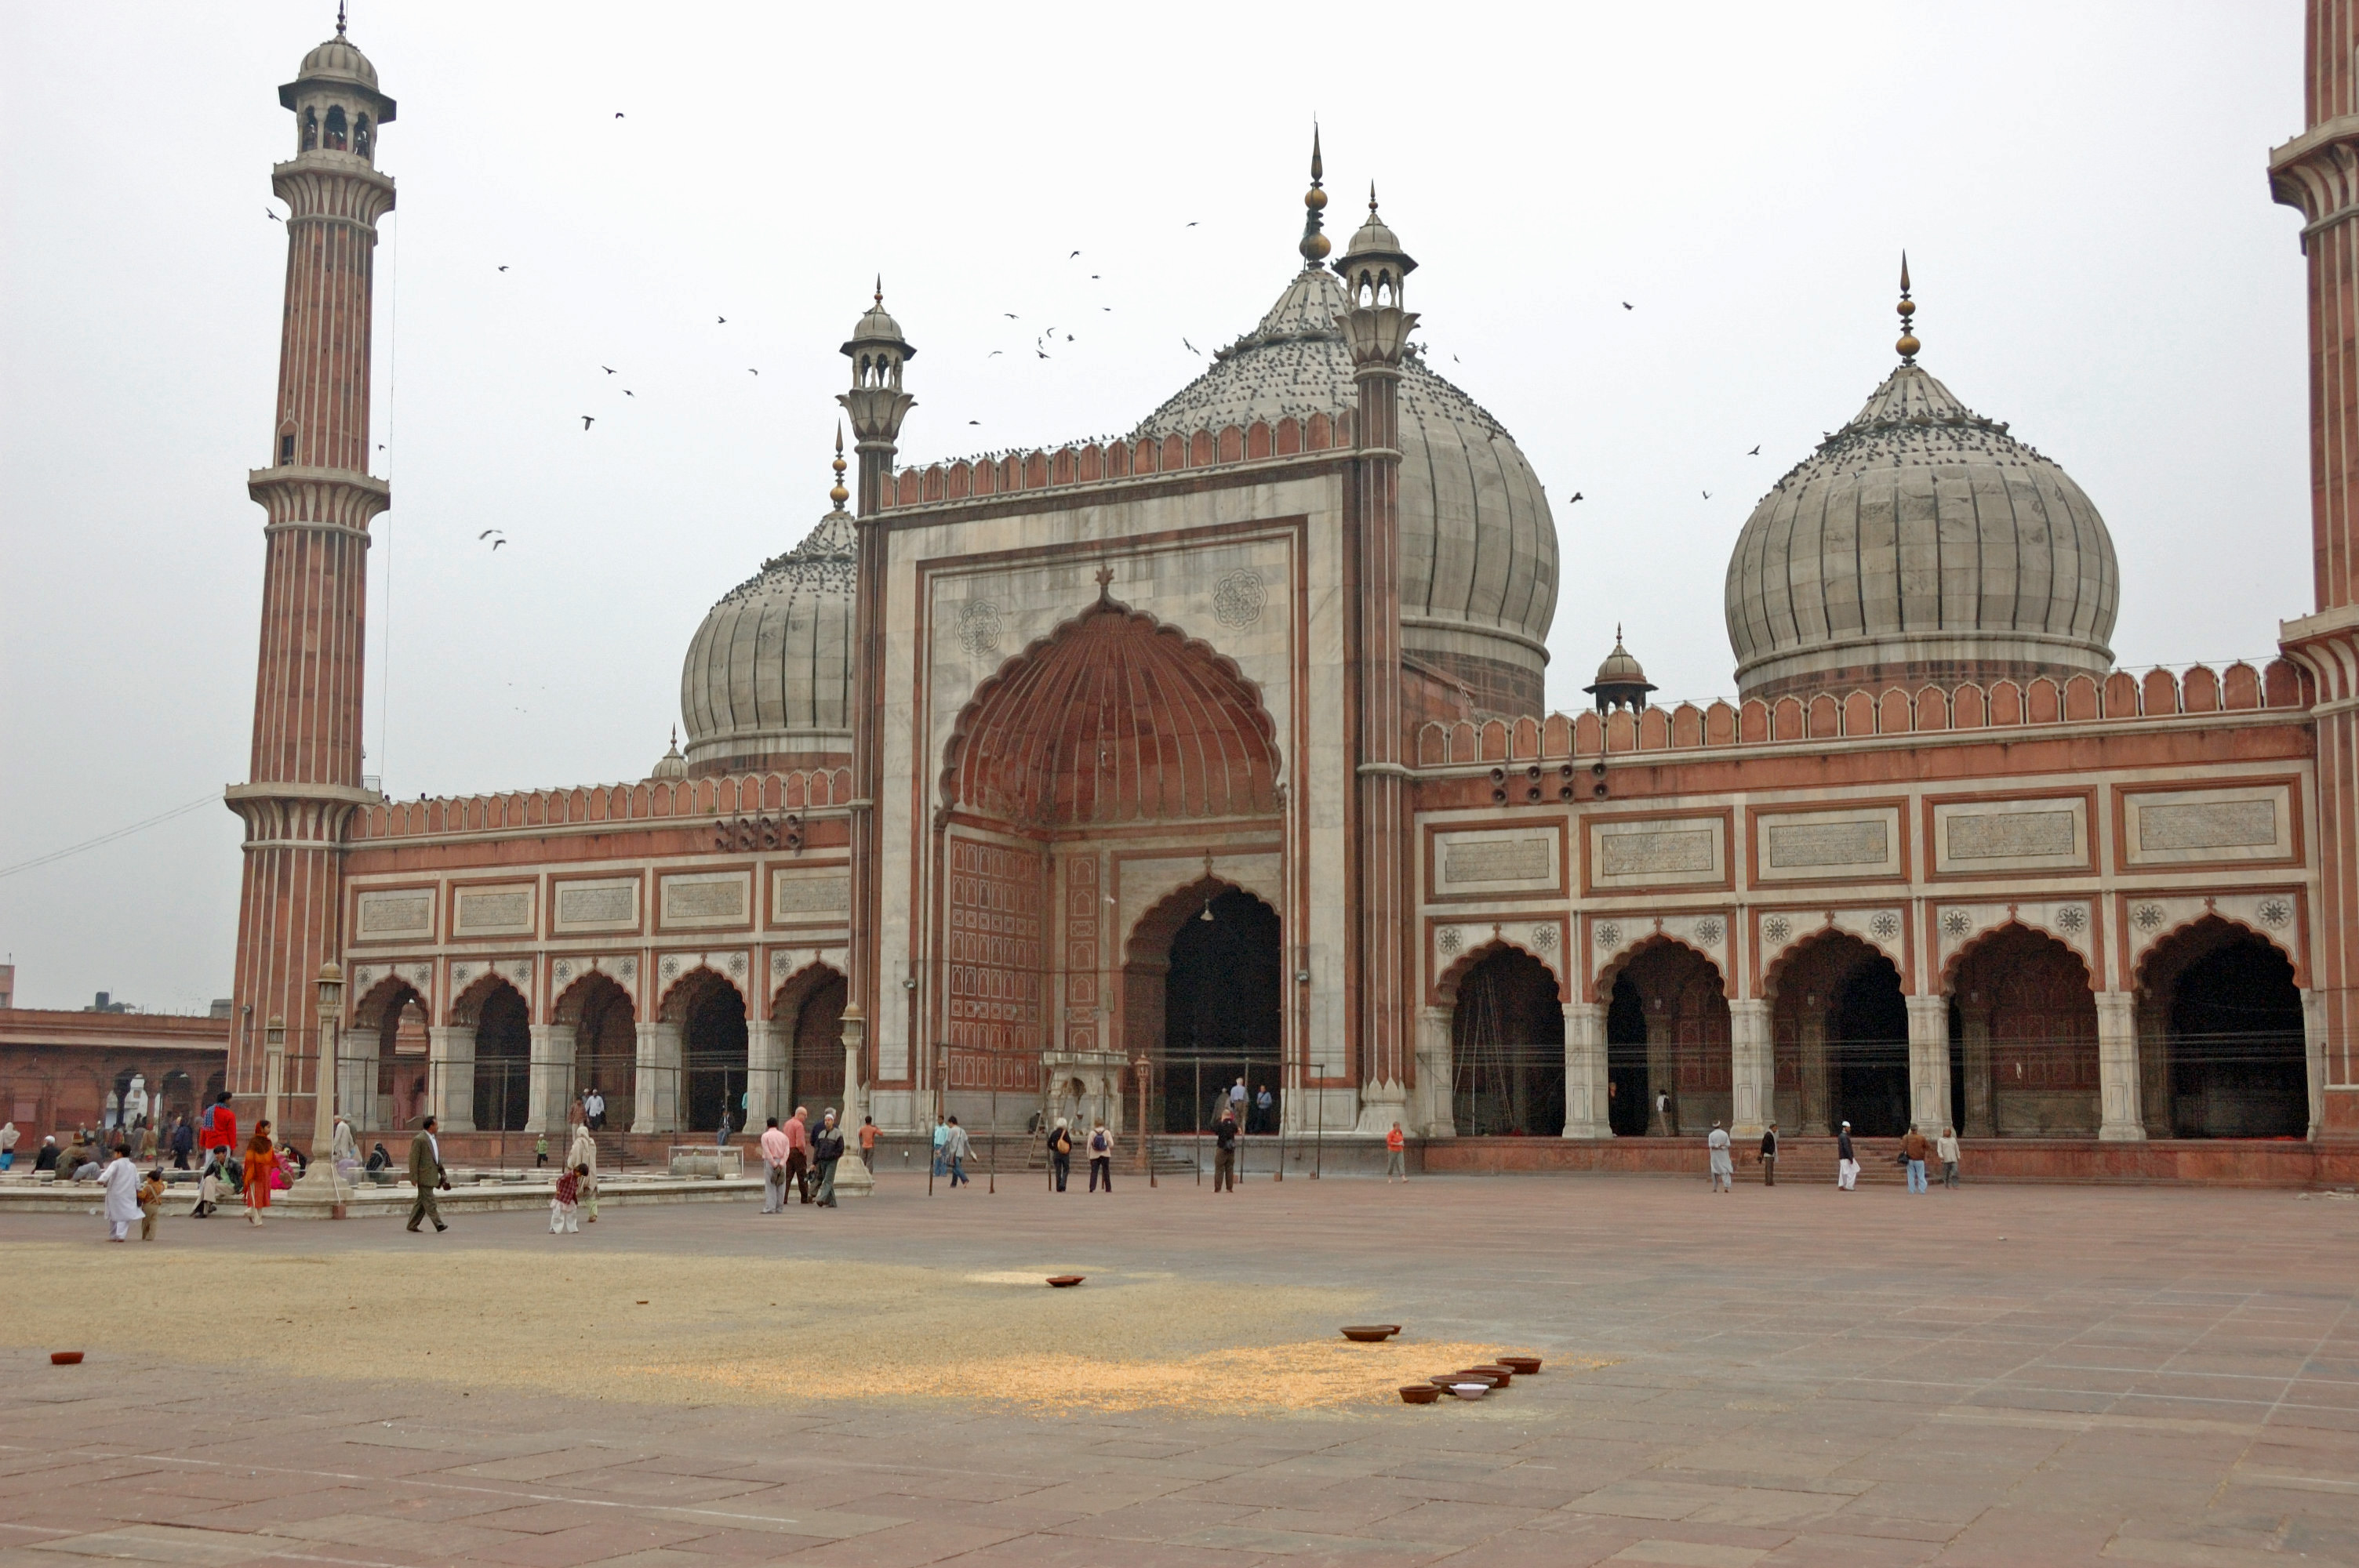 Classic North India - Jama Mosque, New Delhi, India